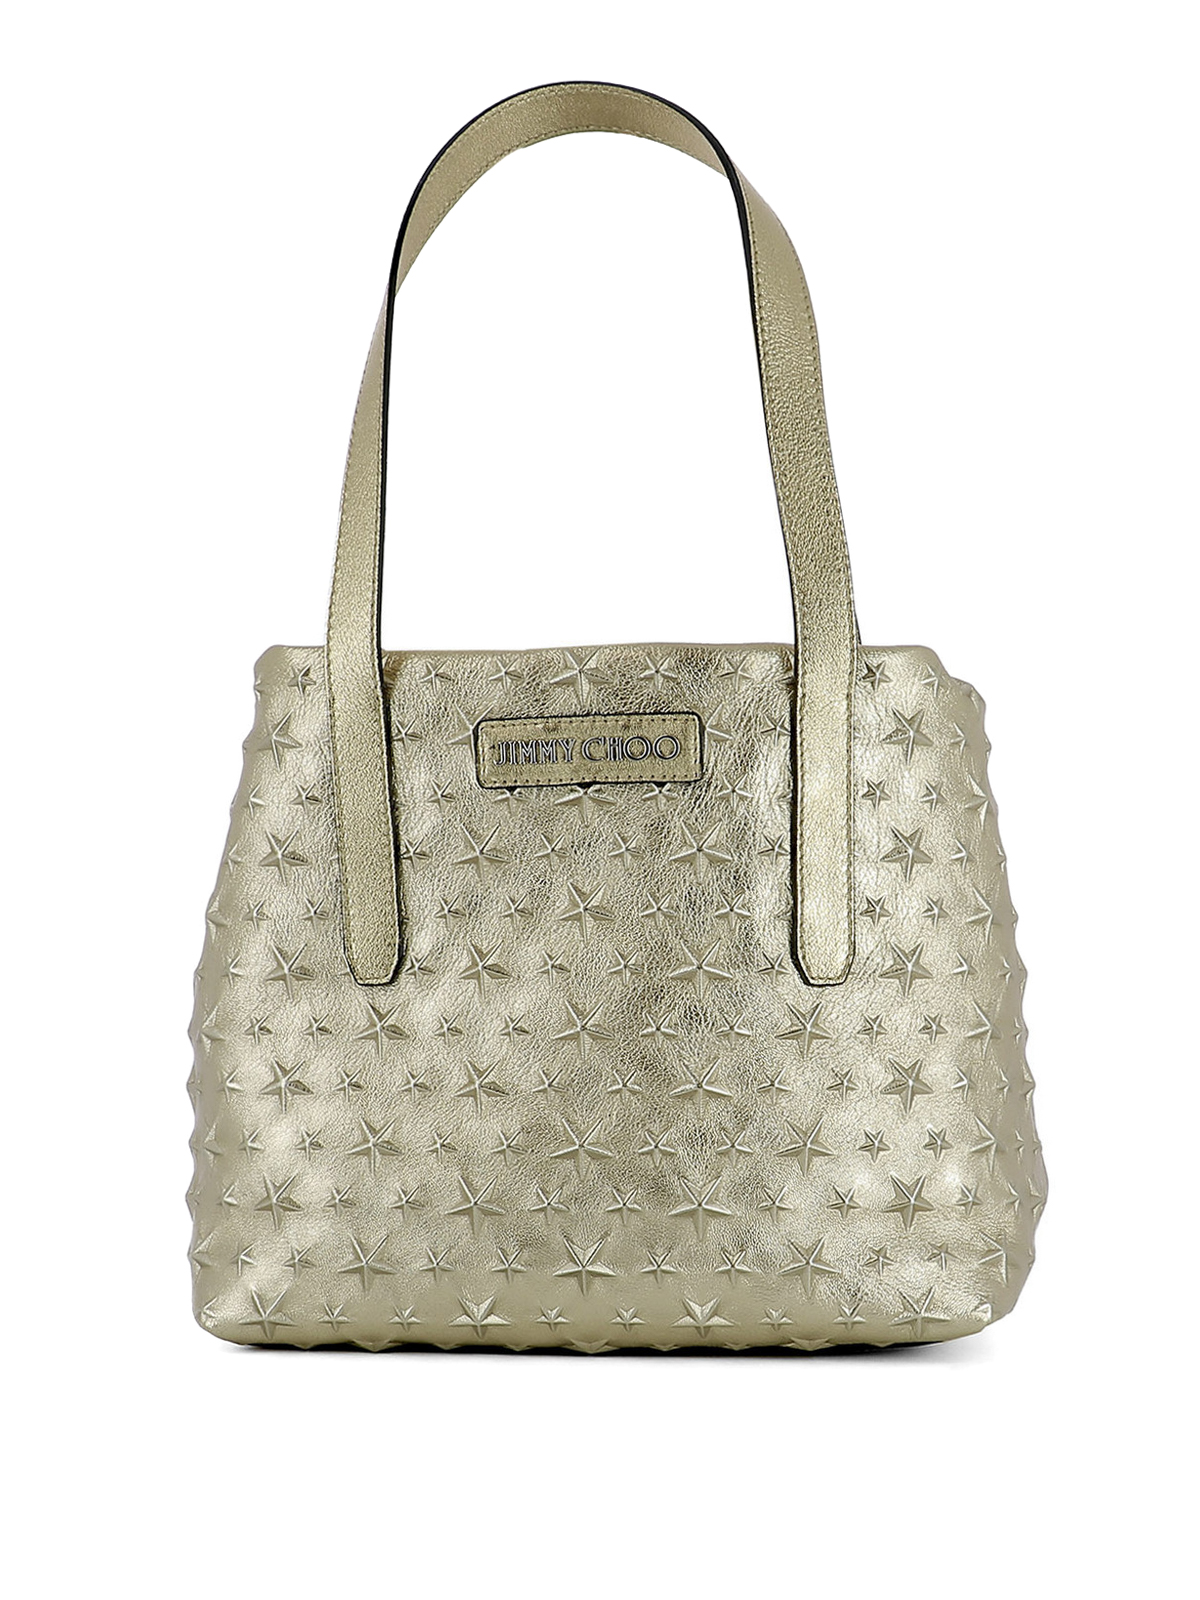 Jimmy choo bags online shopping